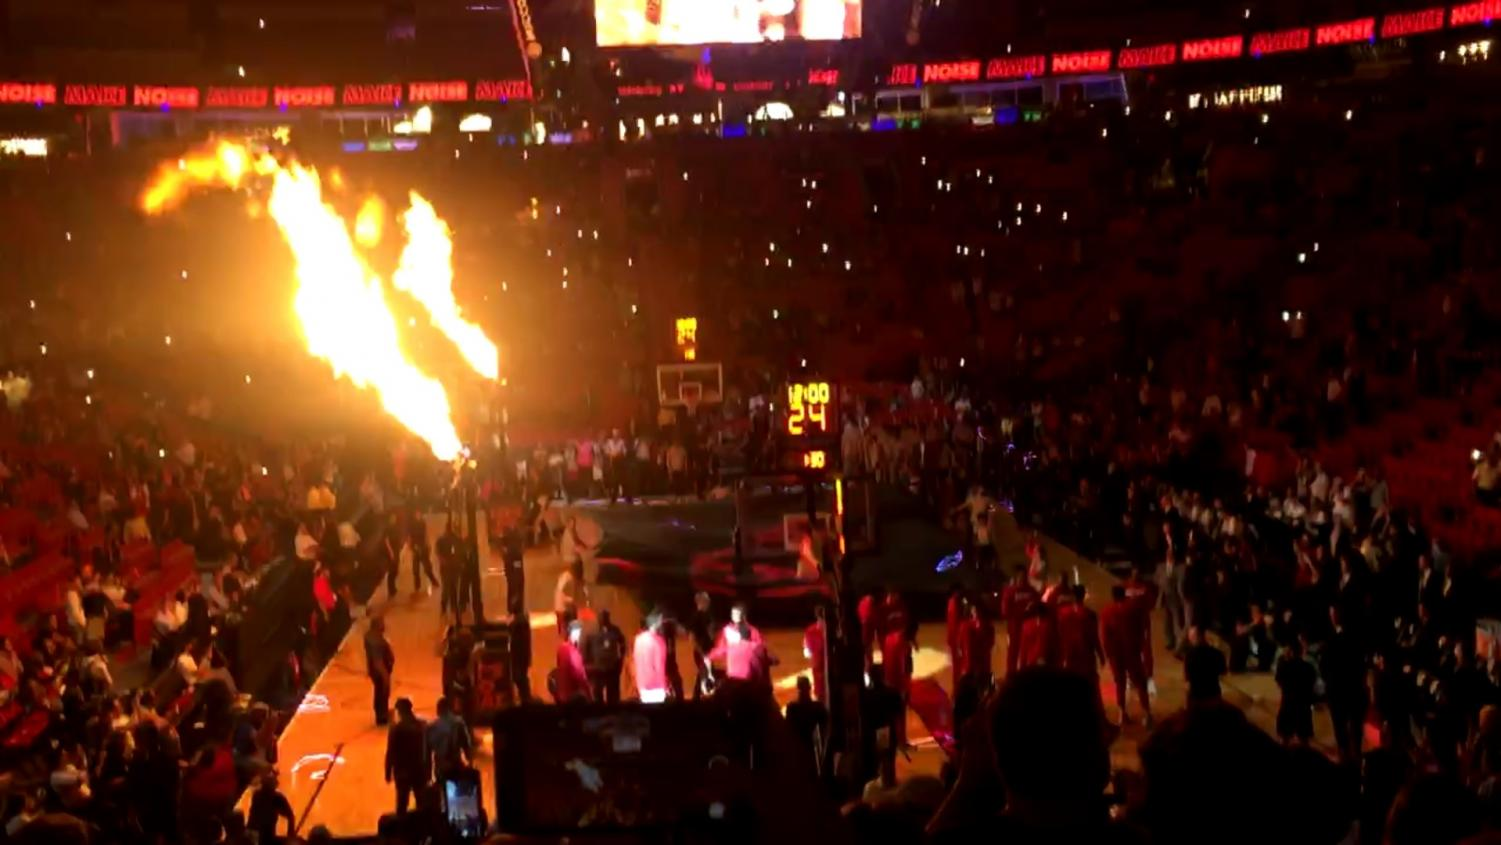 The Americans Airline Arena, home of the Miami Heat, gets fired up before every home game's tip-off.